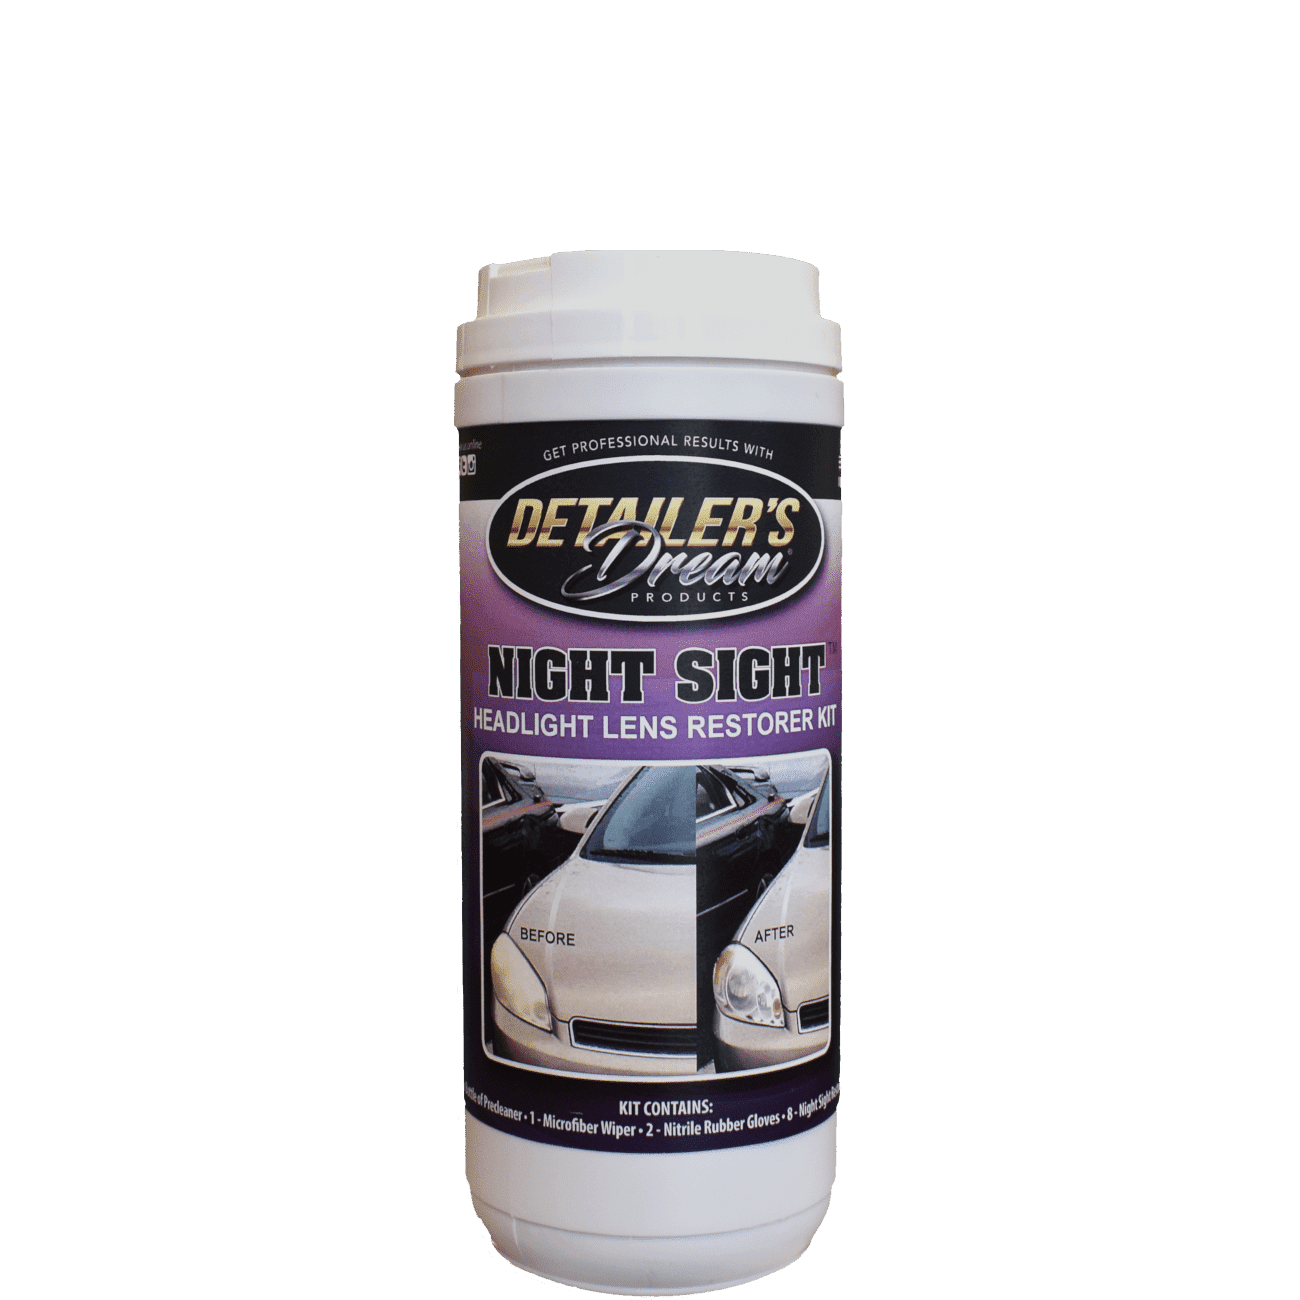 NIGHT SIGHT™-Headlight Lens Restorer-Detailer's Dream